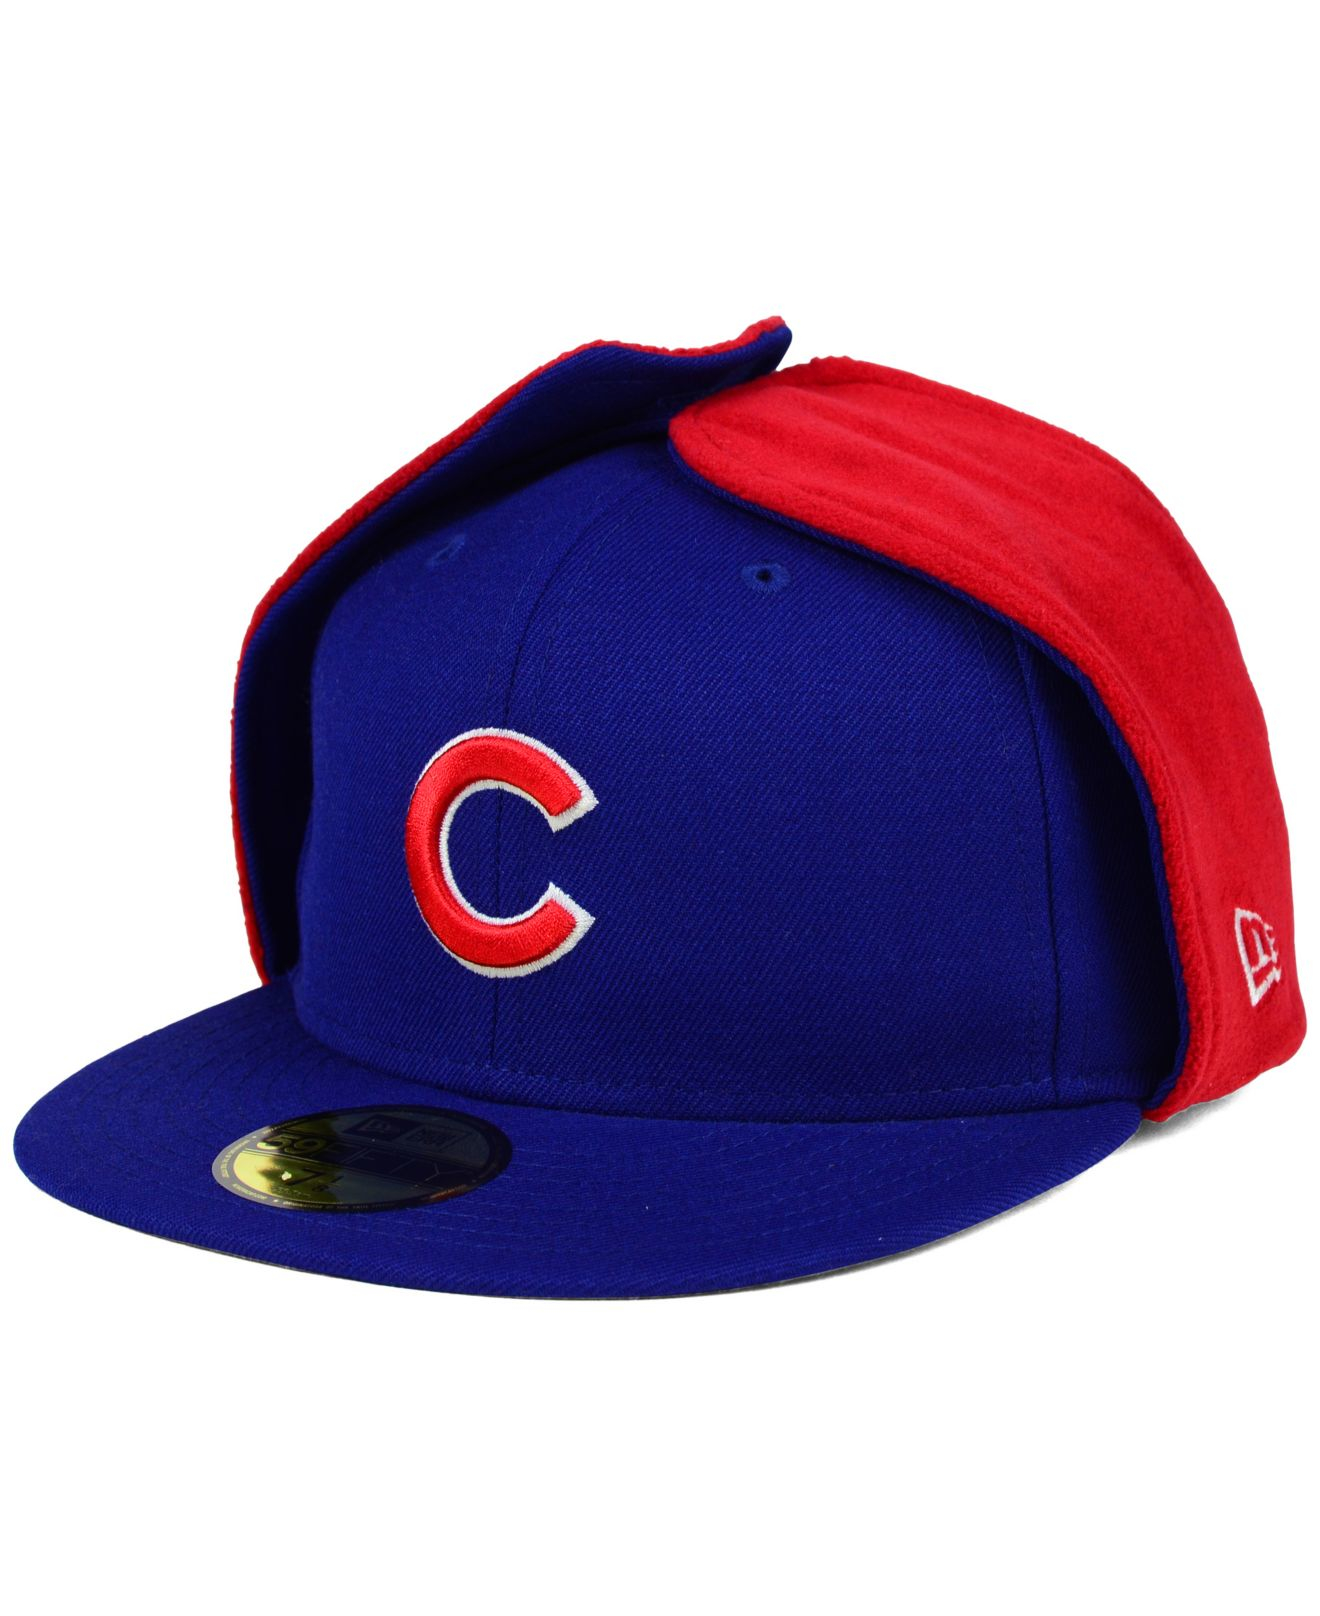 2759b3ef26a Lyst - KTZ Chicago Cubs Dog Ear 59fifty Cap in Red for Men